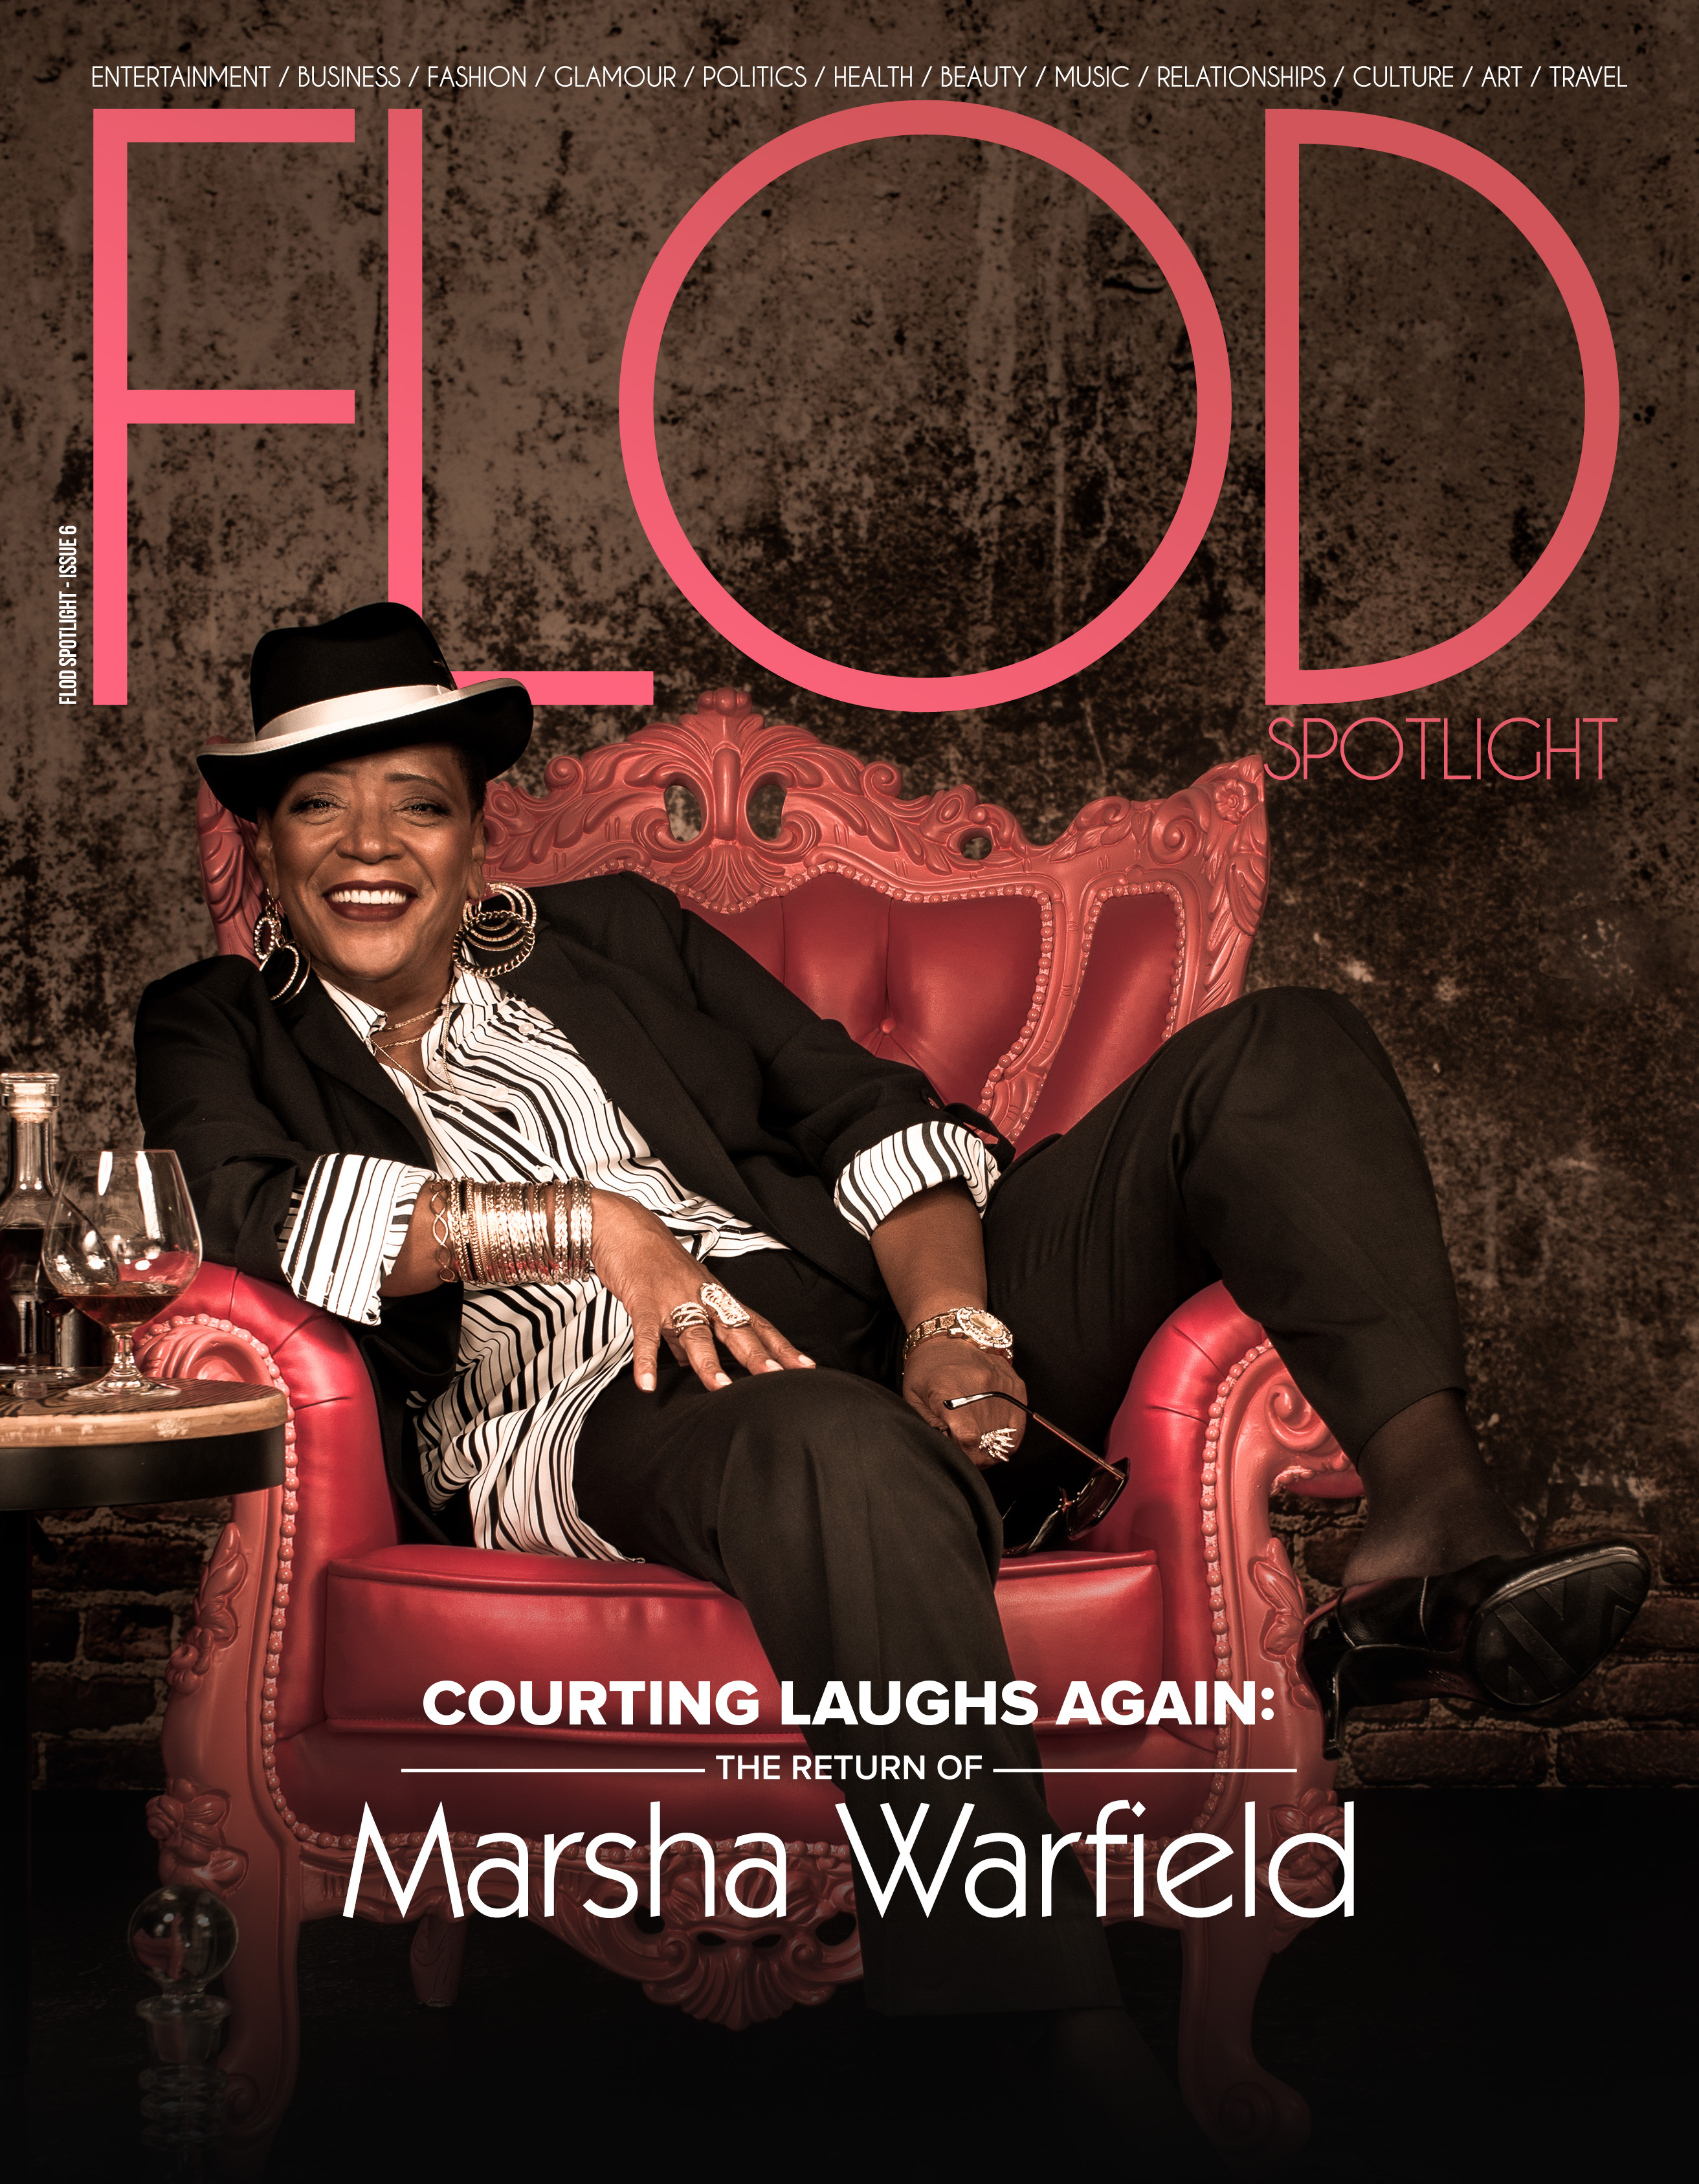 Issue 6 – Courting Laughs Again: The Return of Marsha Warfield